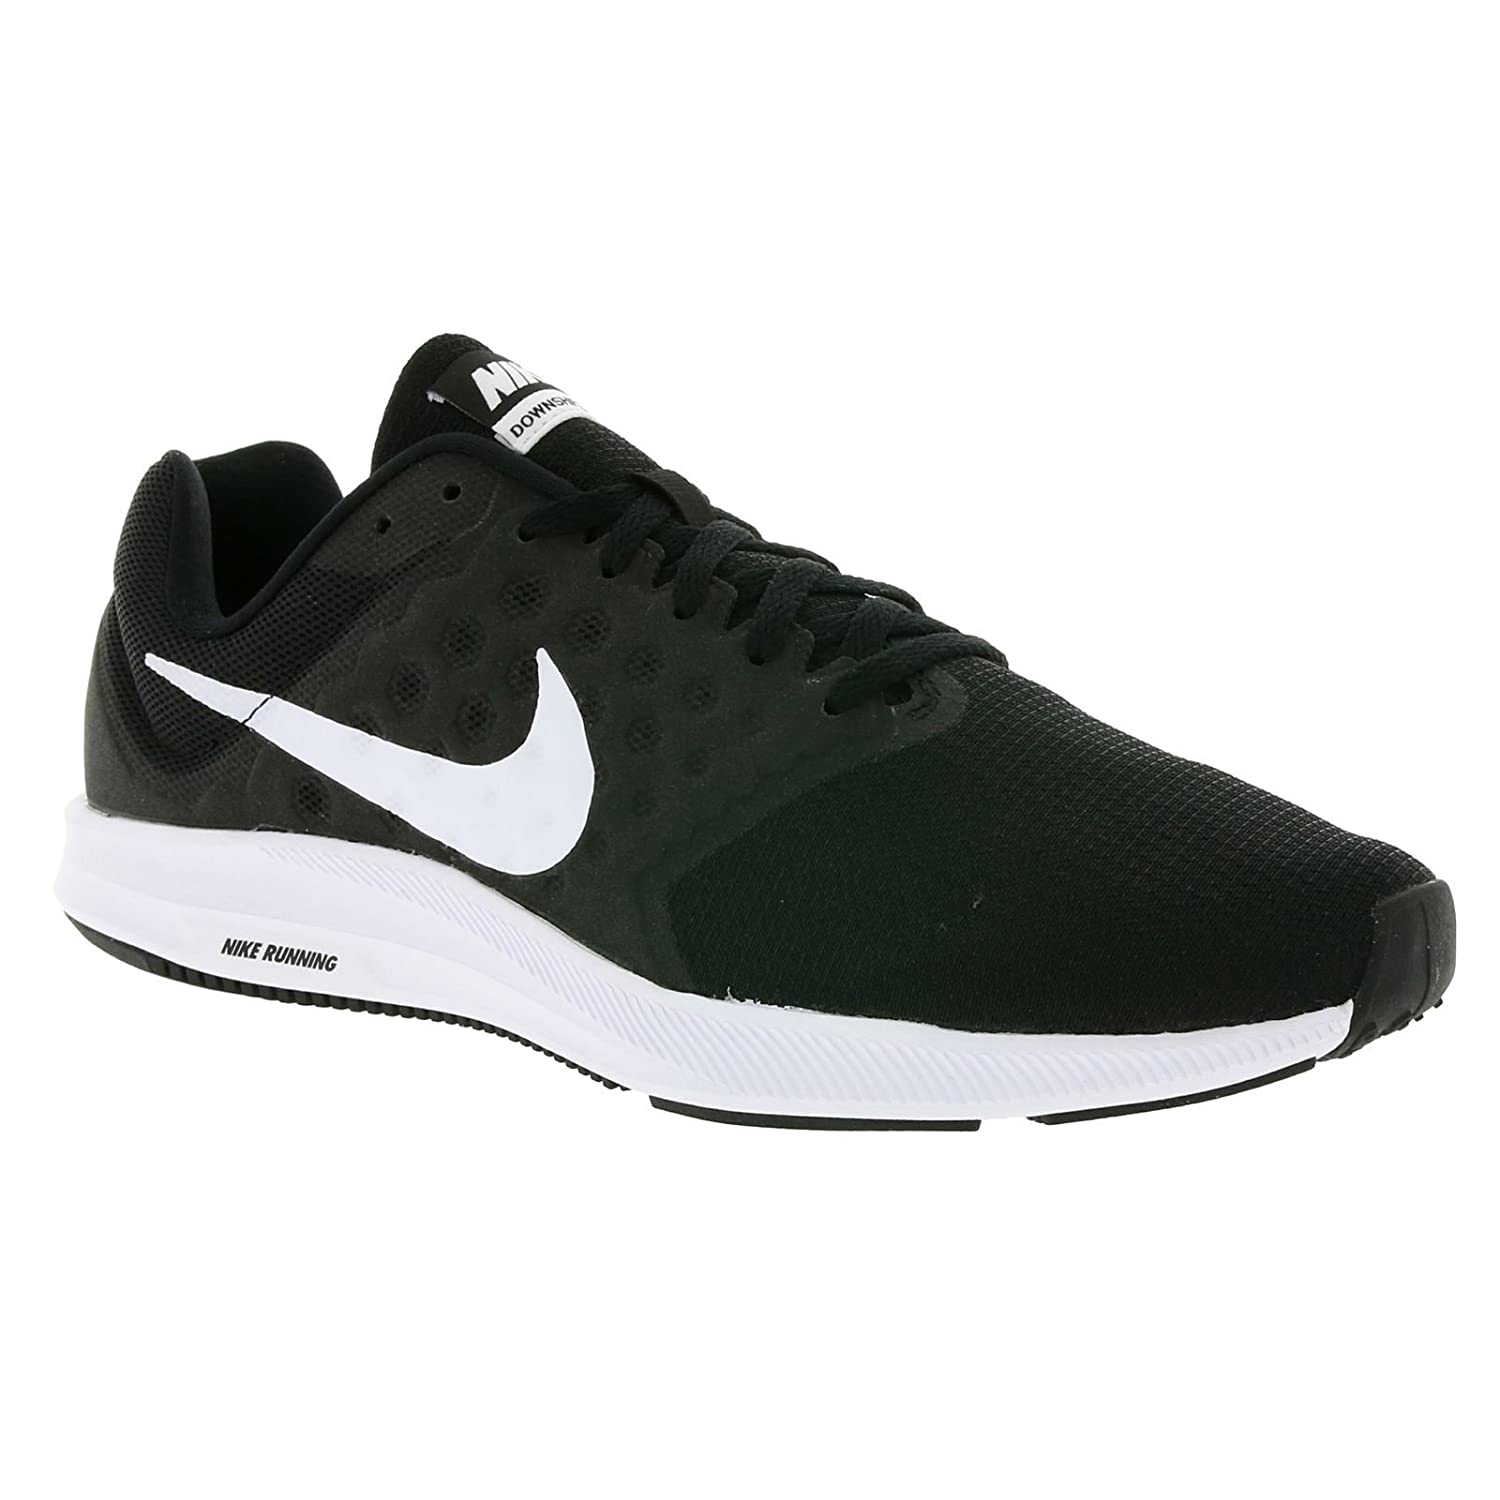 more photos 3a9a7 254eb Nike Men s Downshifter 7 Running Shoes  Buy Online at Low Prices in India -  Amazon.in